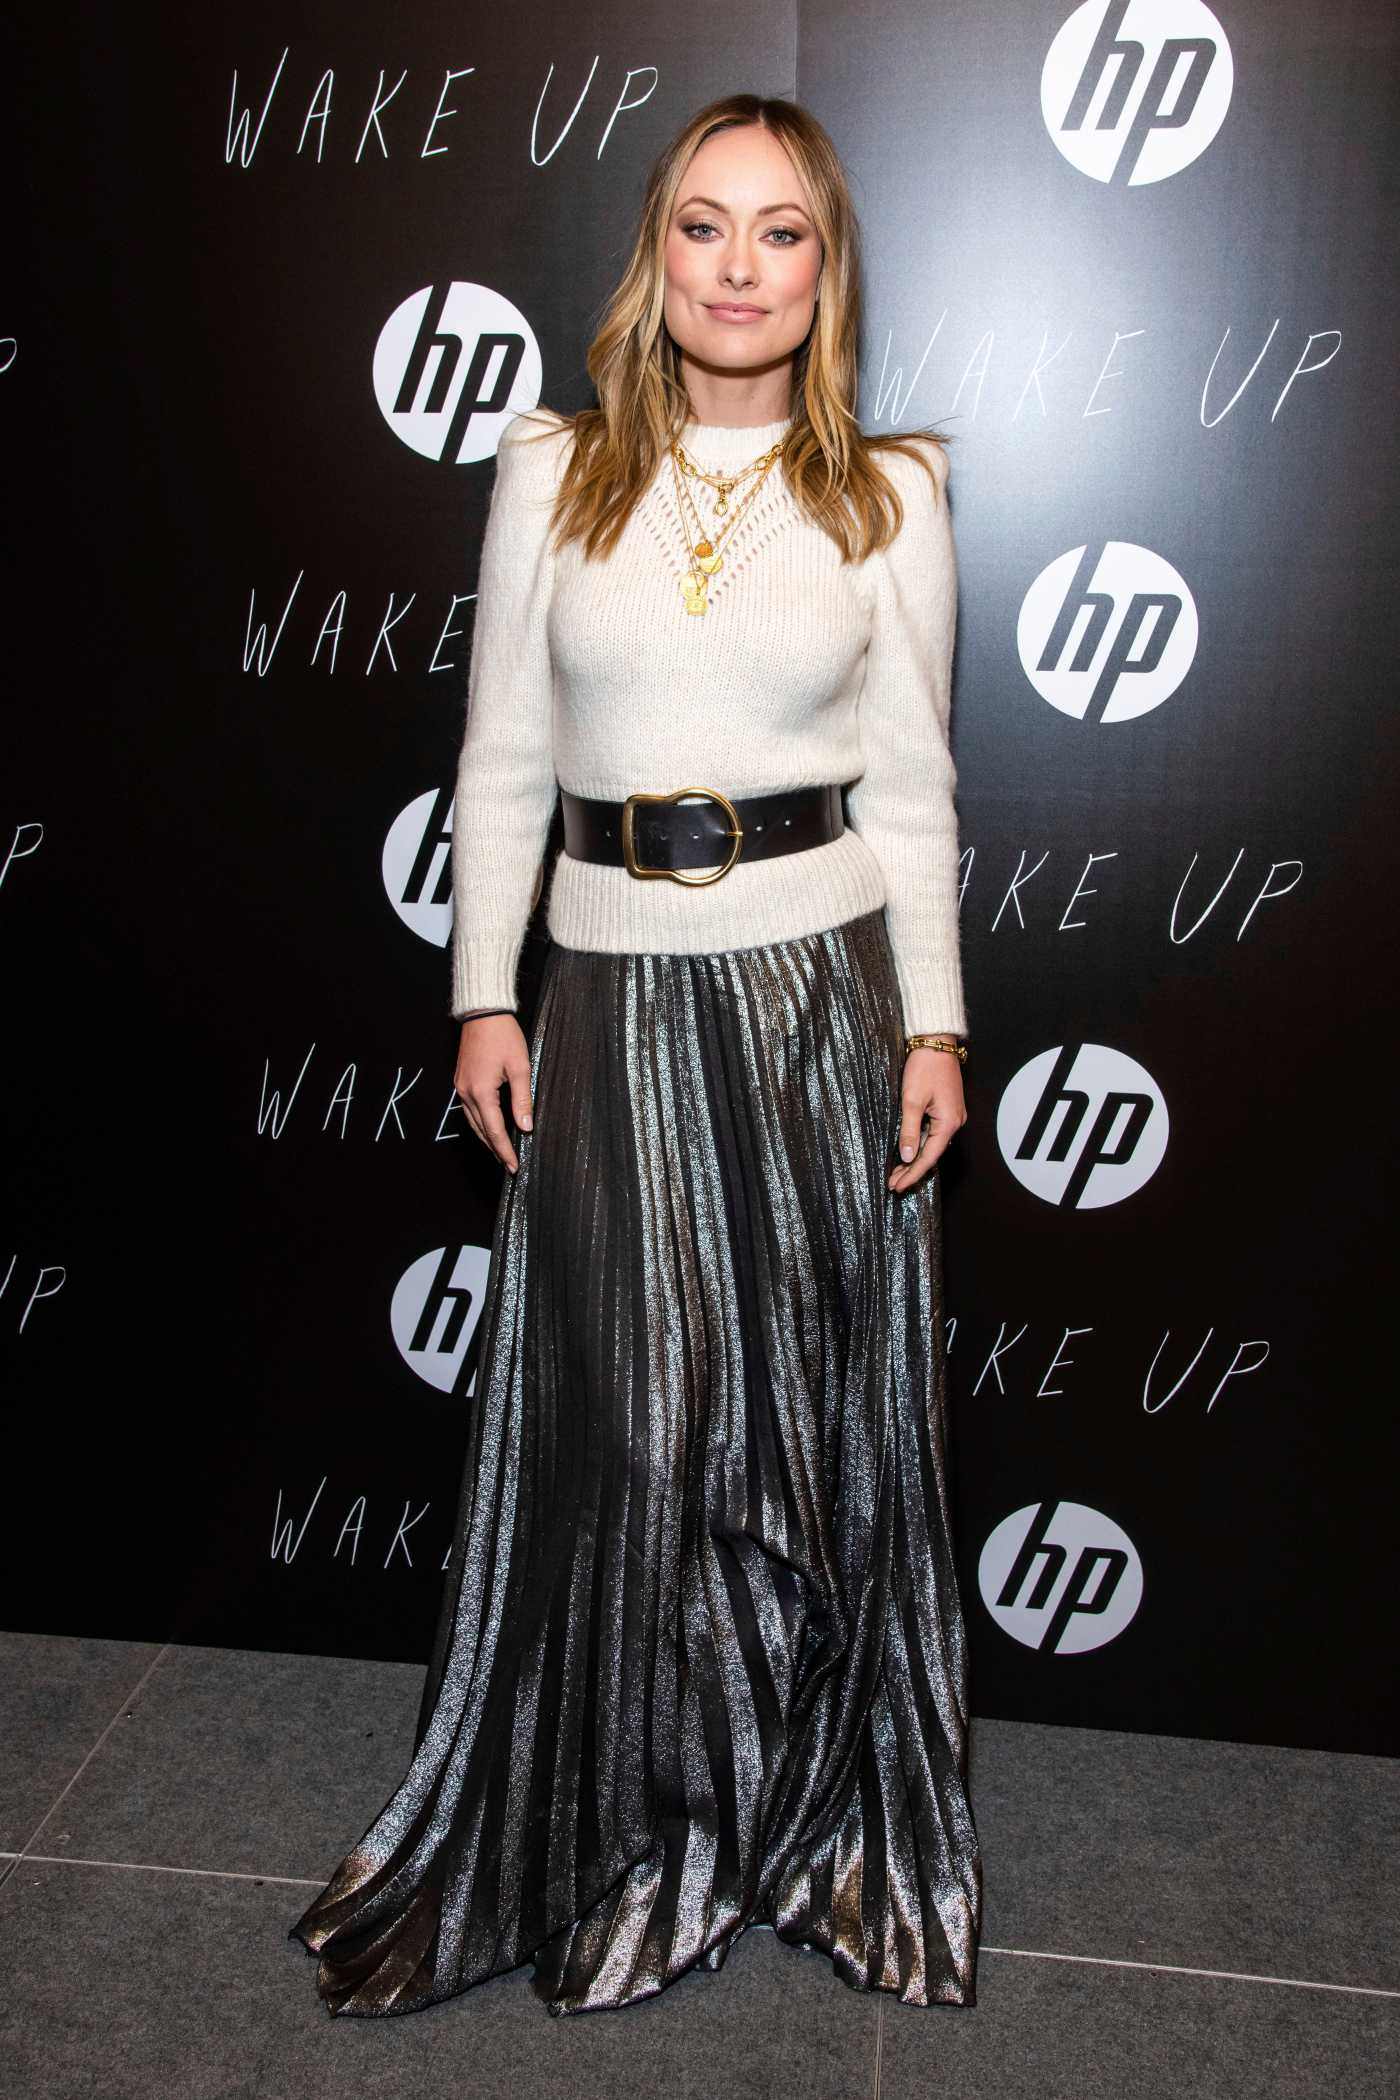 Olivia Wilde Attends the Wake Up Premiere During 2020 Sundance Film Festival in Park City 01/24/2020